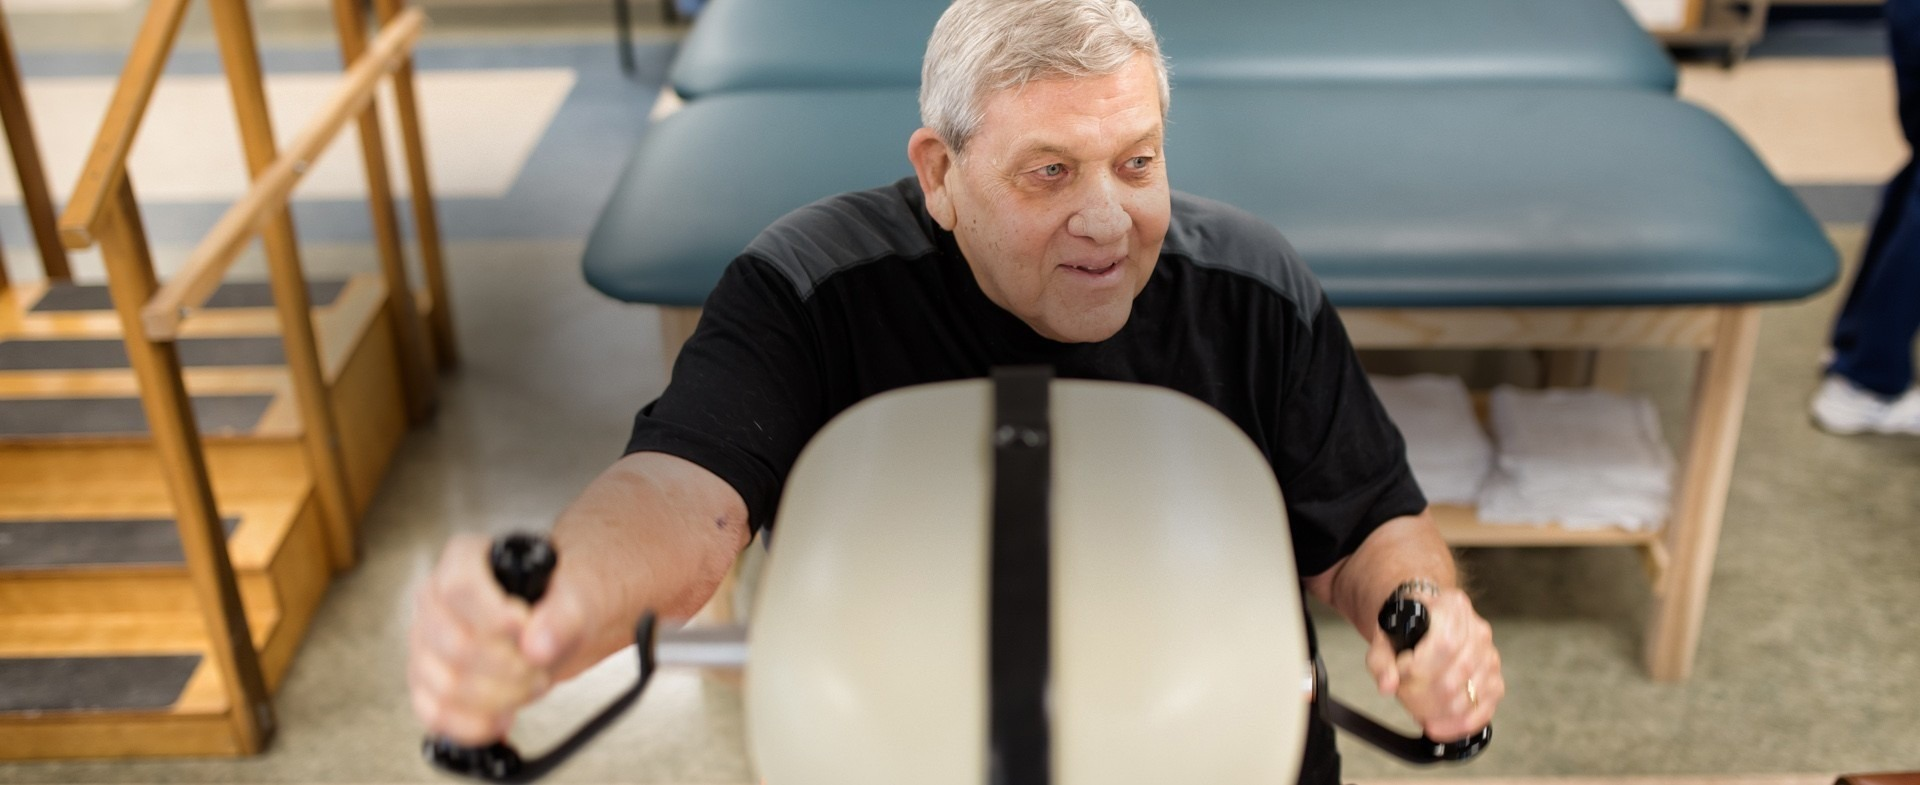 A senior citizen male exercising